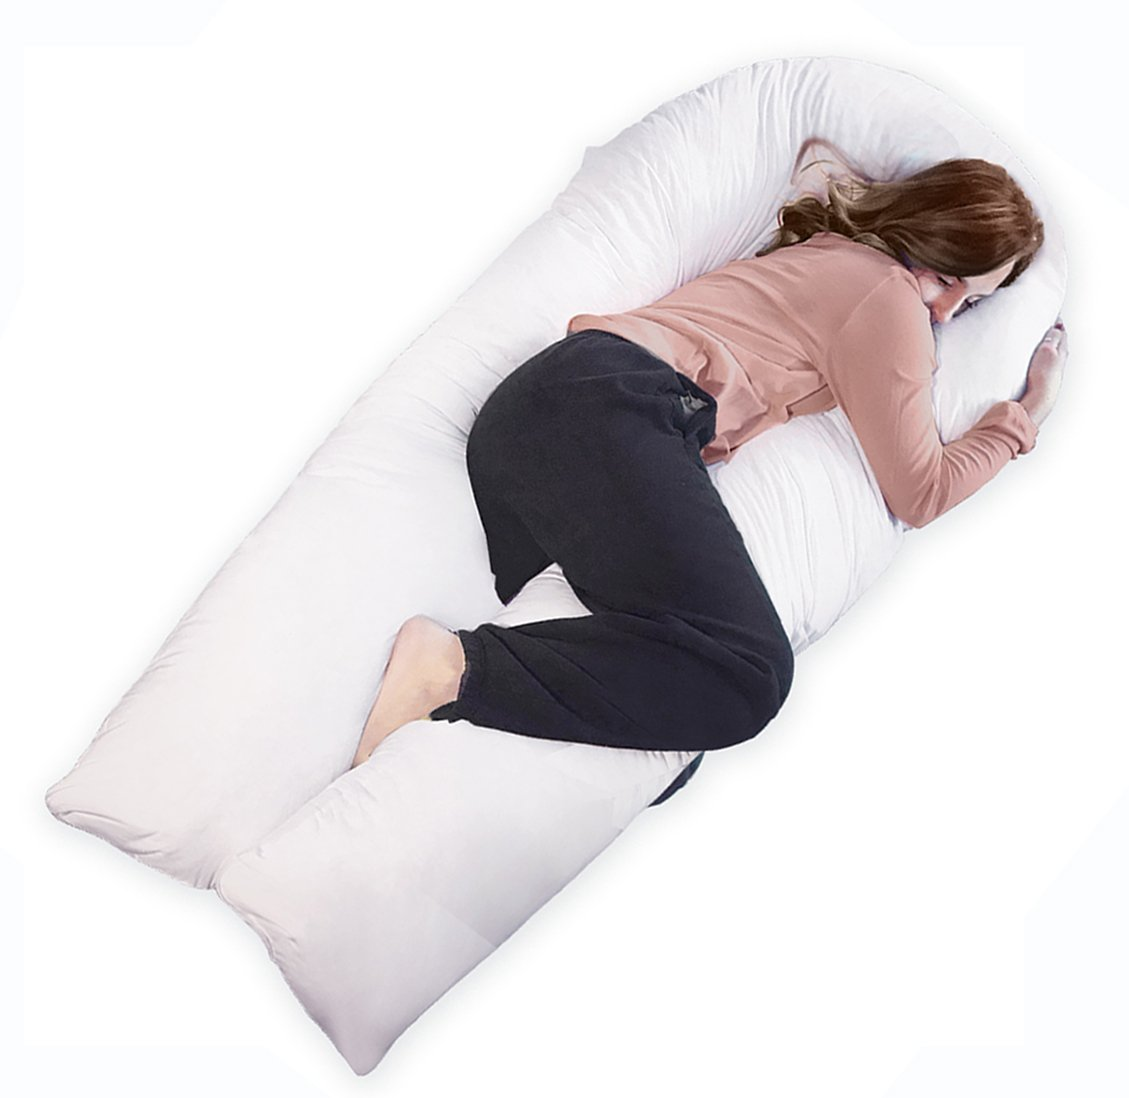 QUEEN ROSE 65 inch Pregnancy Body Pillow King size / Maternity Support Pillow for Neck Pain with 100% Hypoallergenic Removable Pillow Cover